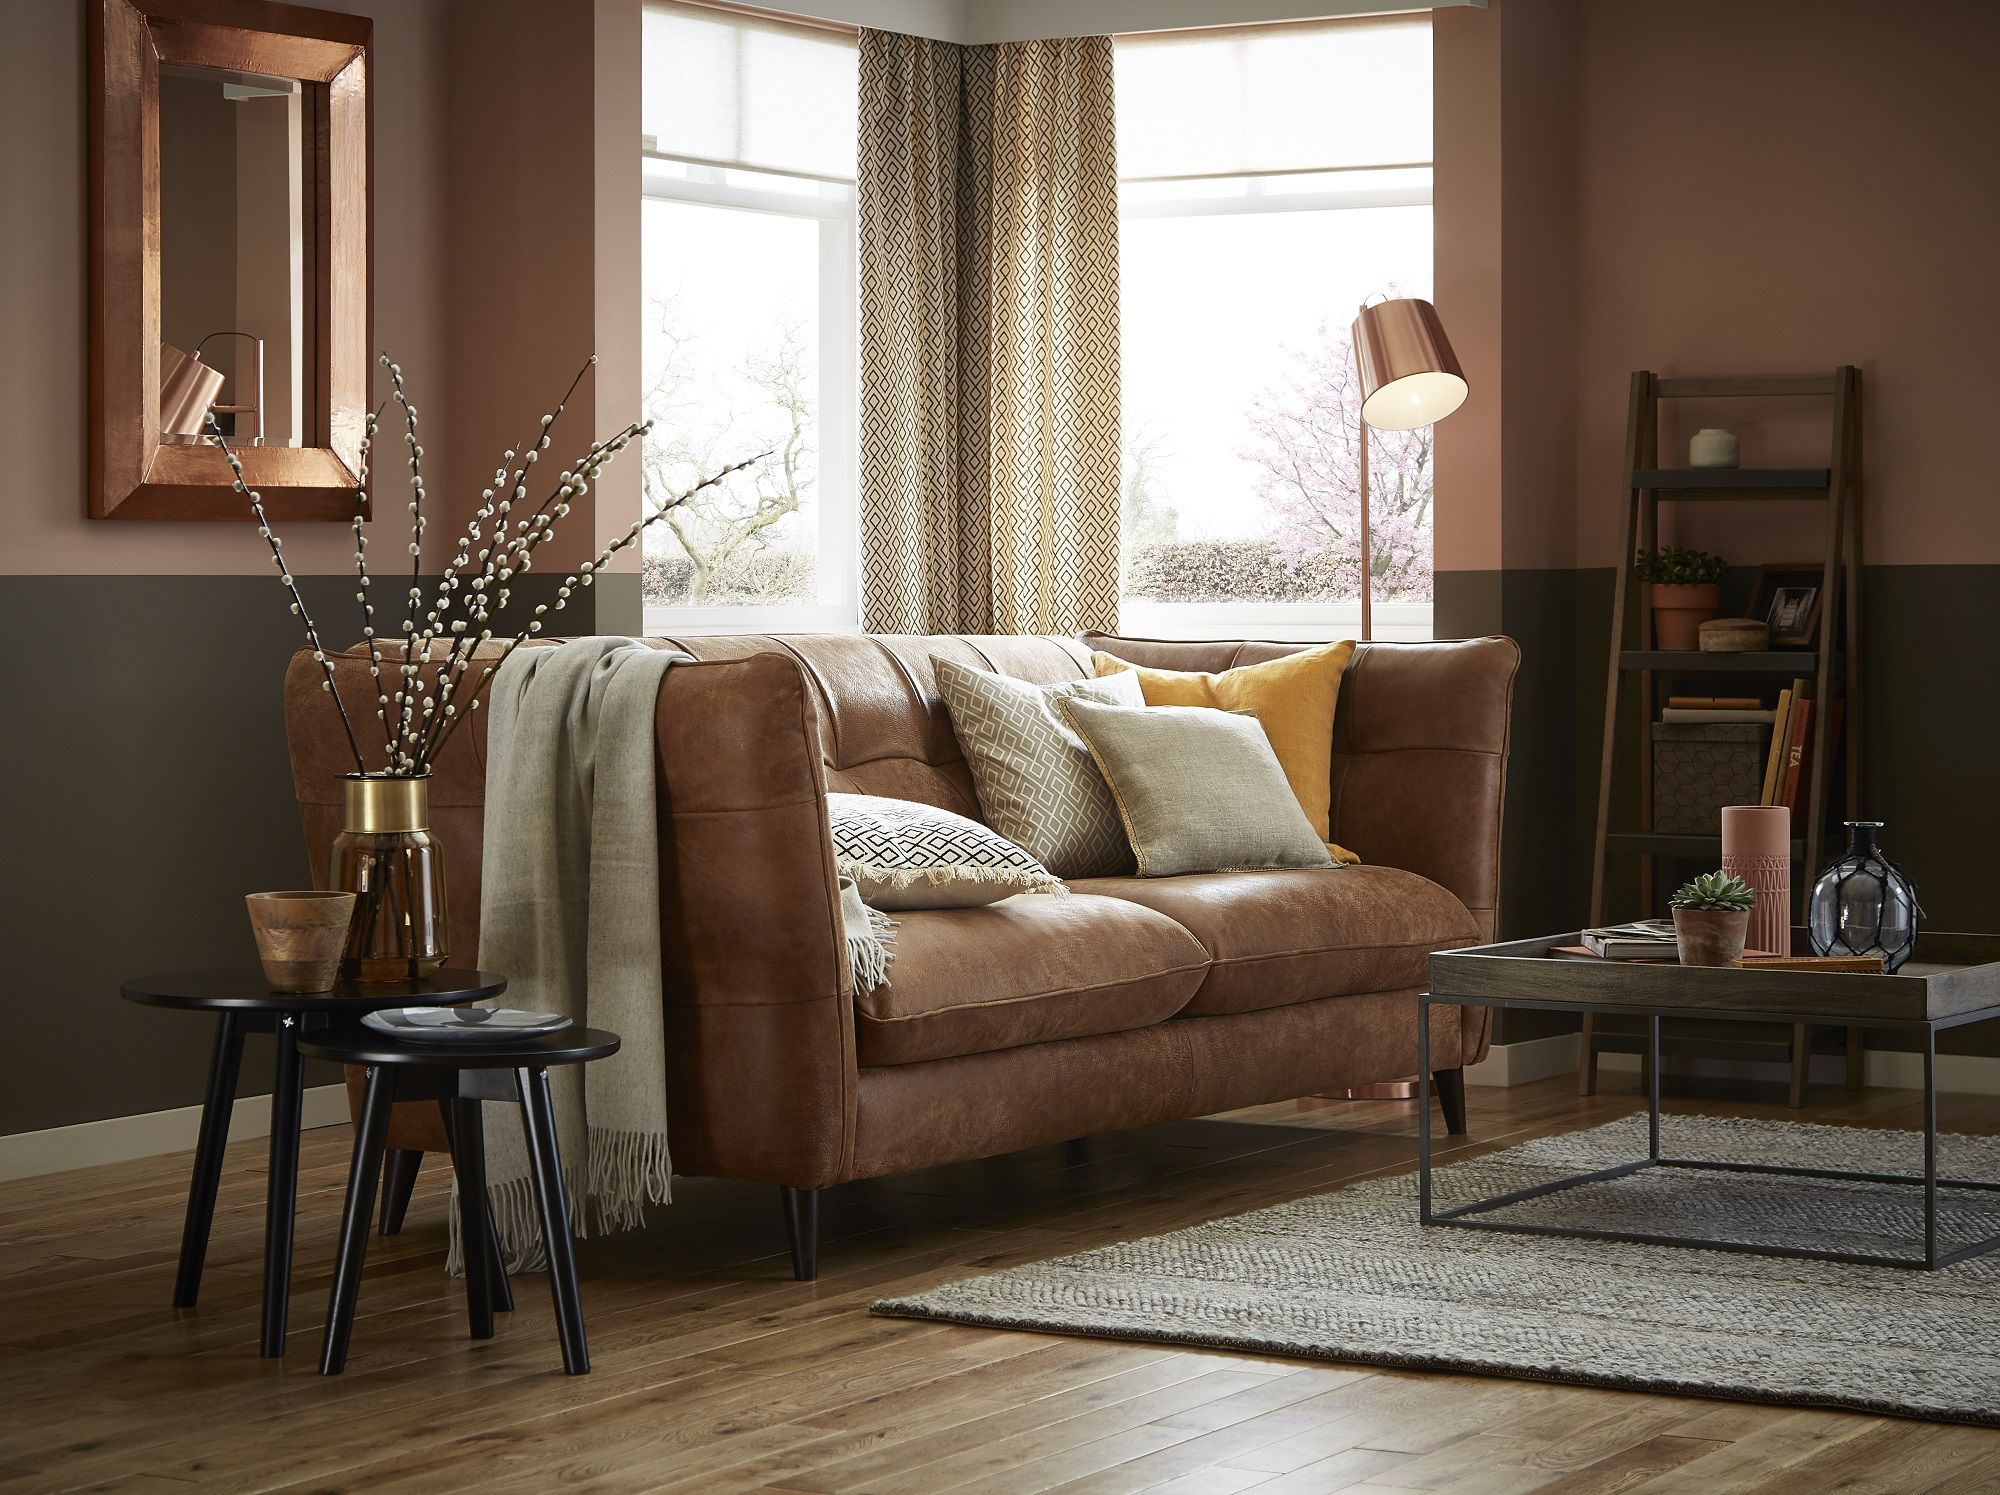 Tan Leather Sofas Are Classic Investment Pieces And The